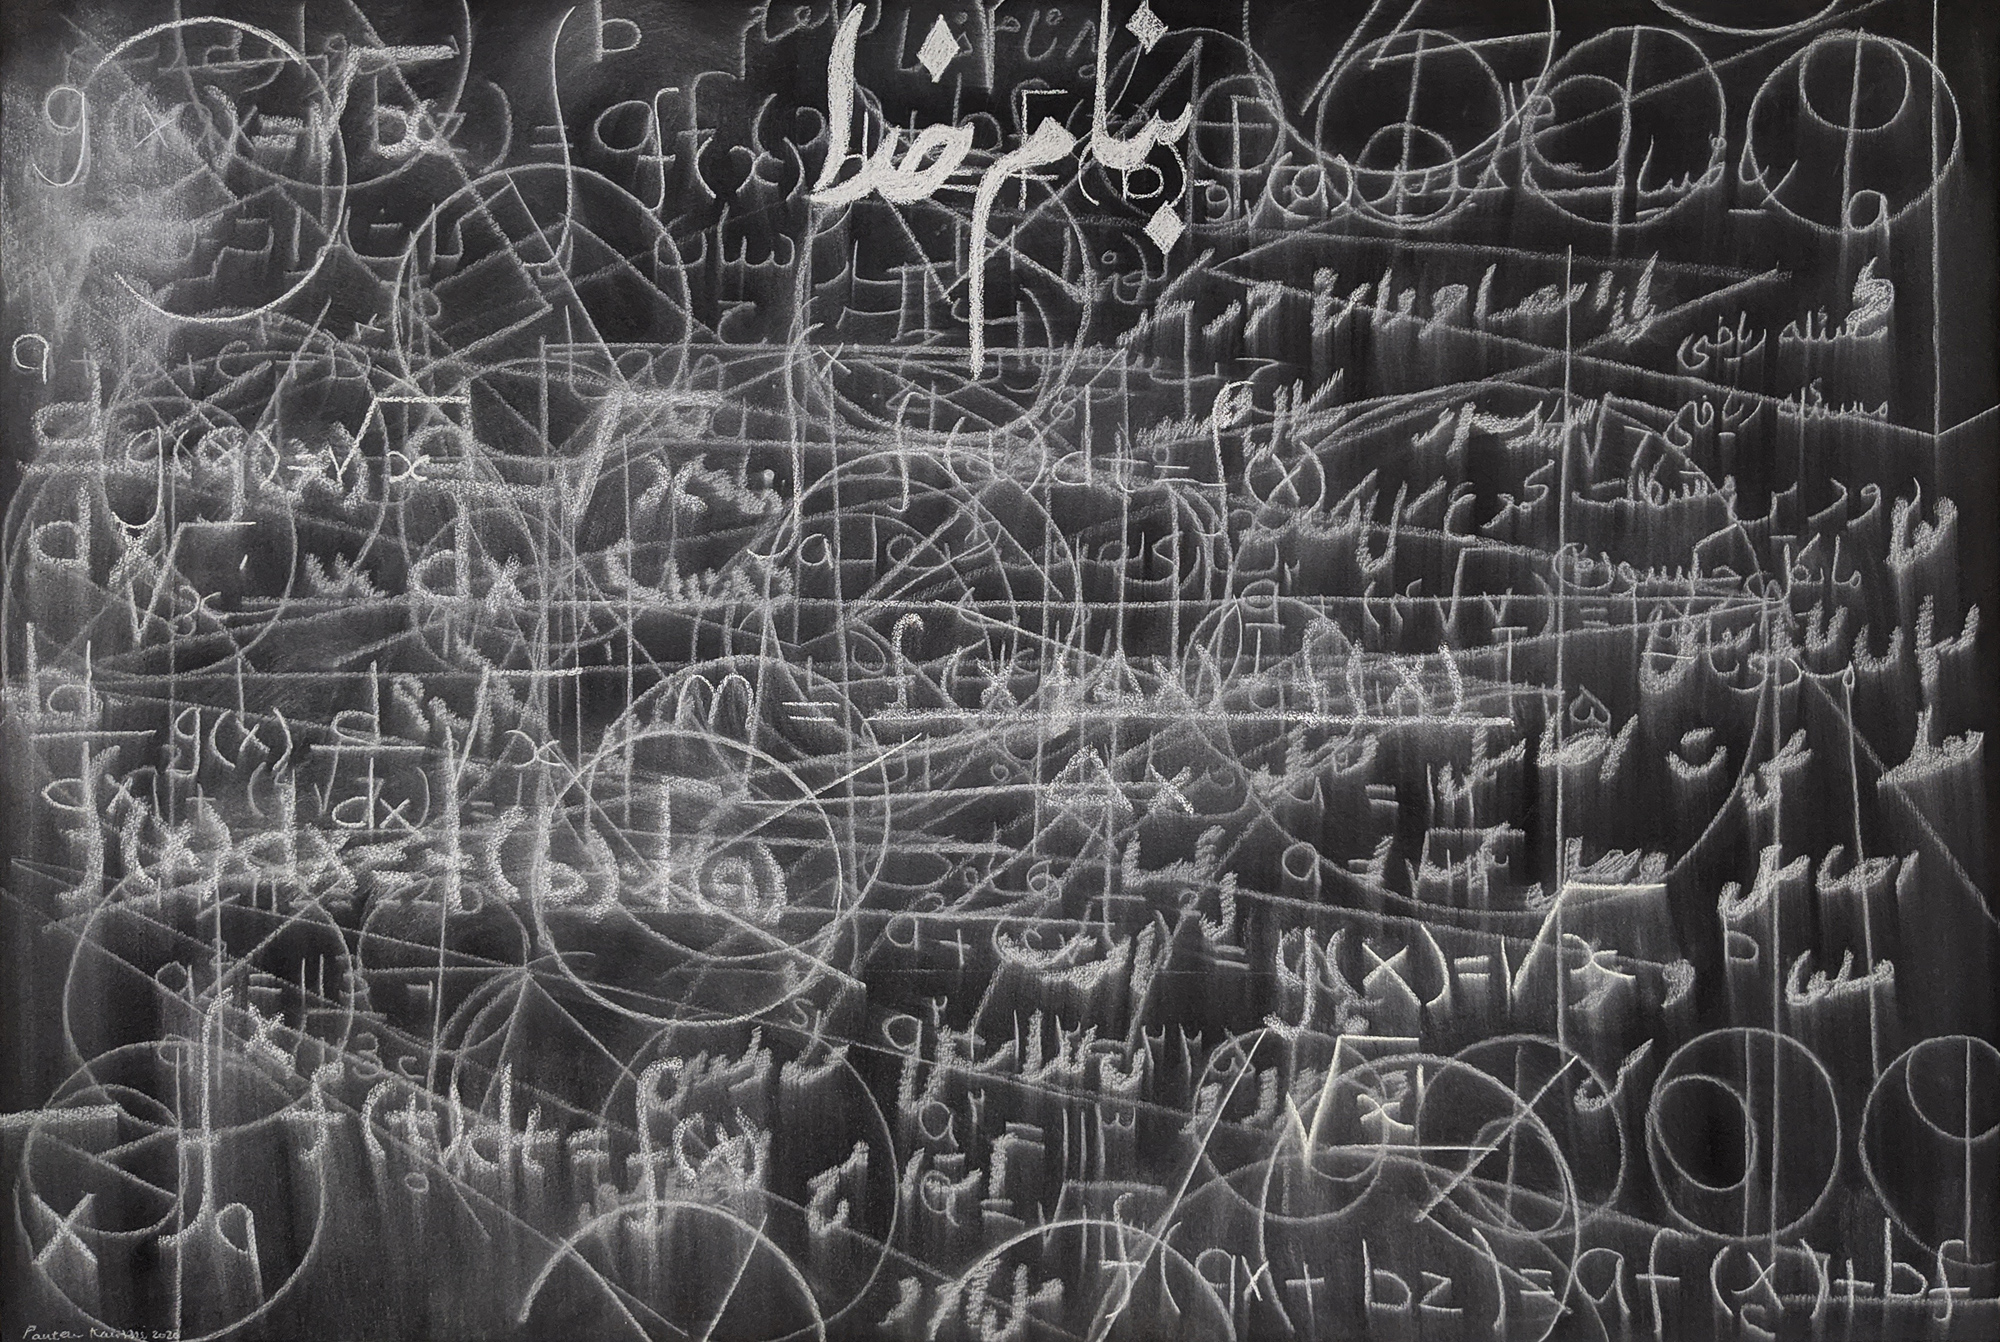 A blackboard with layers upon layers of writing in Persian, equations, and diagrams written in white chalk.